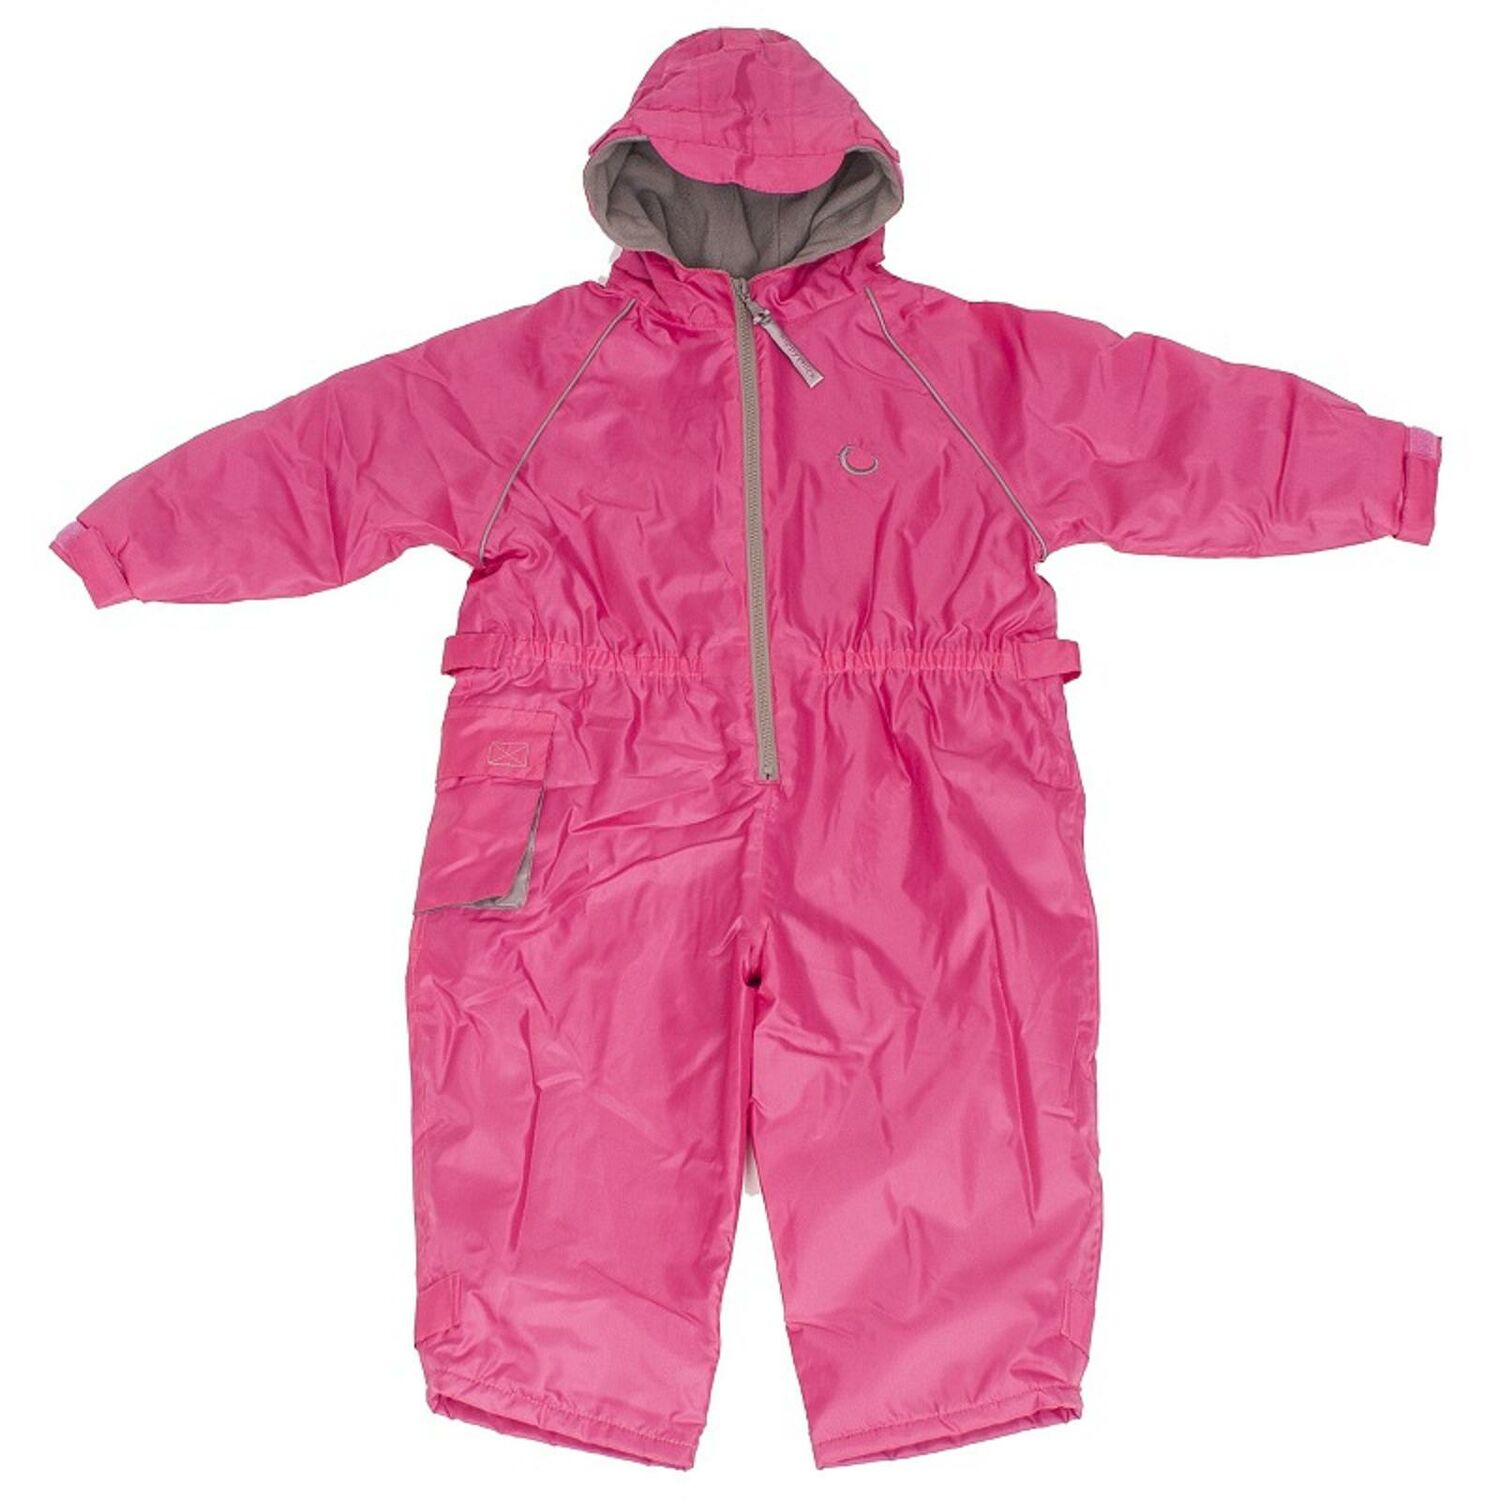 Hippychick Waterproof All-in-One Suit 18-24 Months Pink